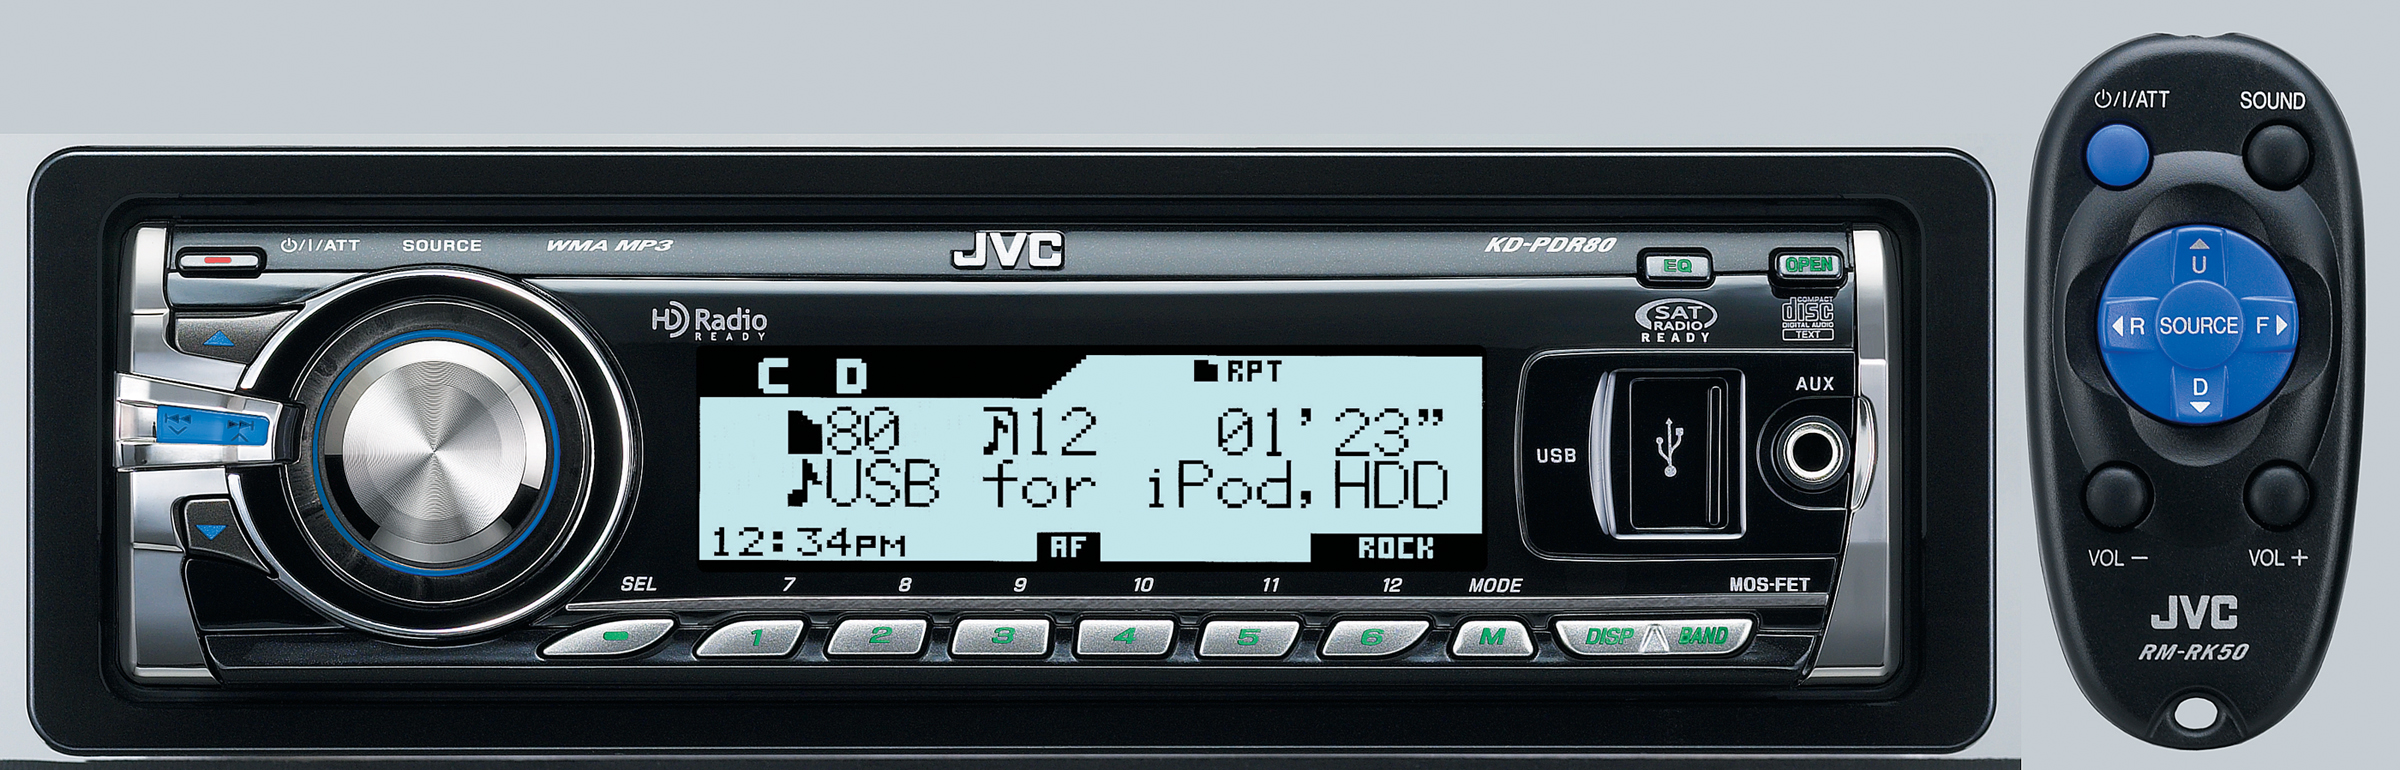 Wiring diagram jvc kd bt standard car stereo wire